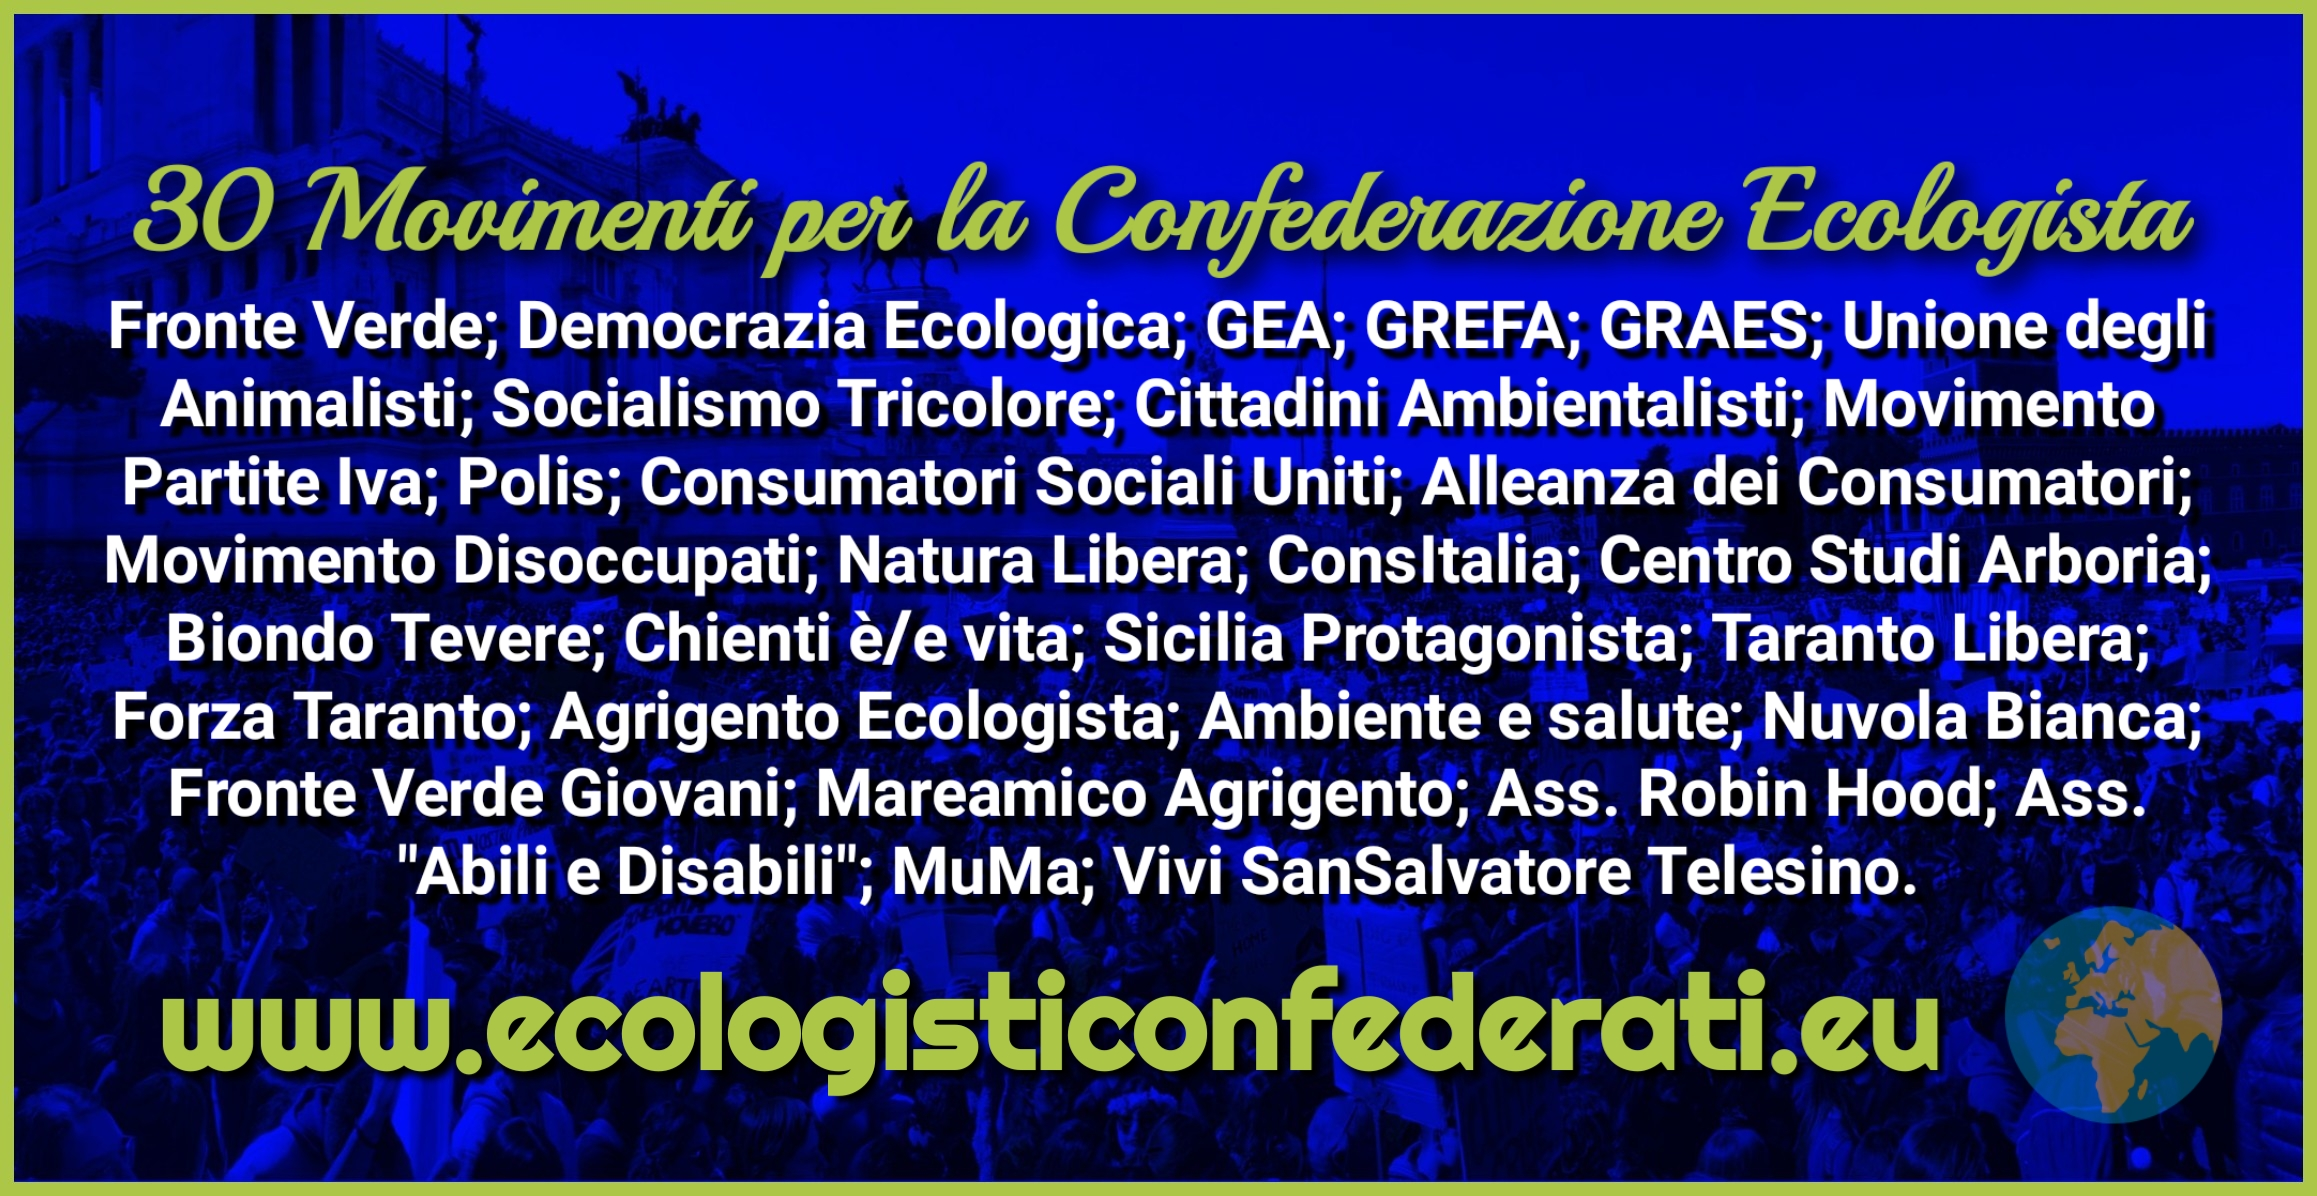 La Confederazione Ecologista sale a 30 Movimenti